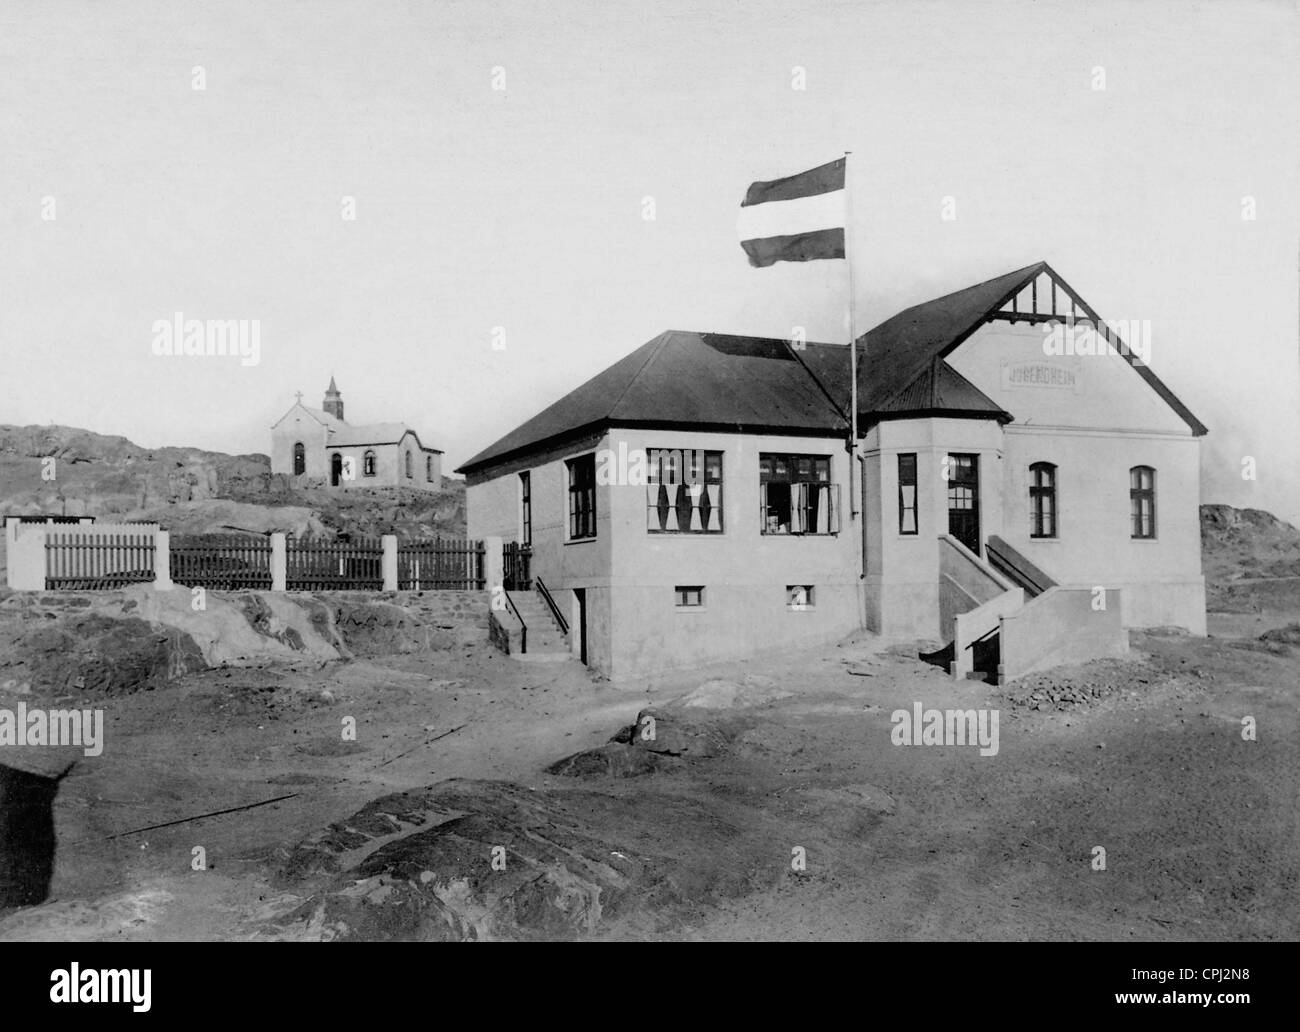 Youth home in Luderitz in German Southwest Africa, 1918 - Stock Image